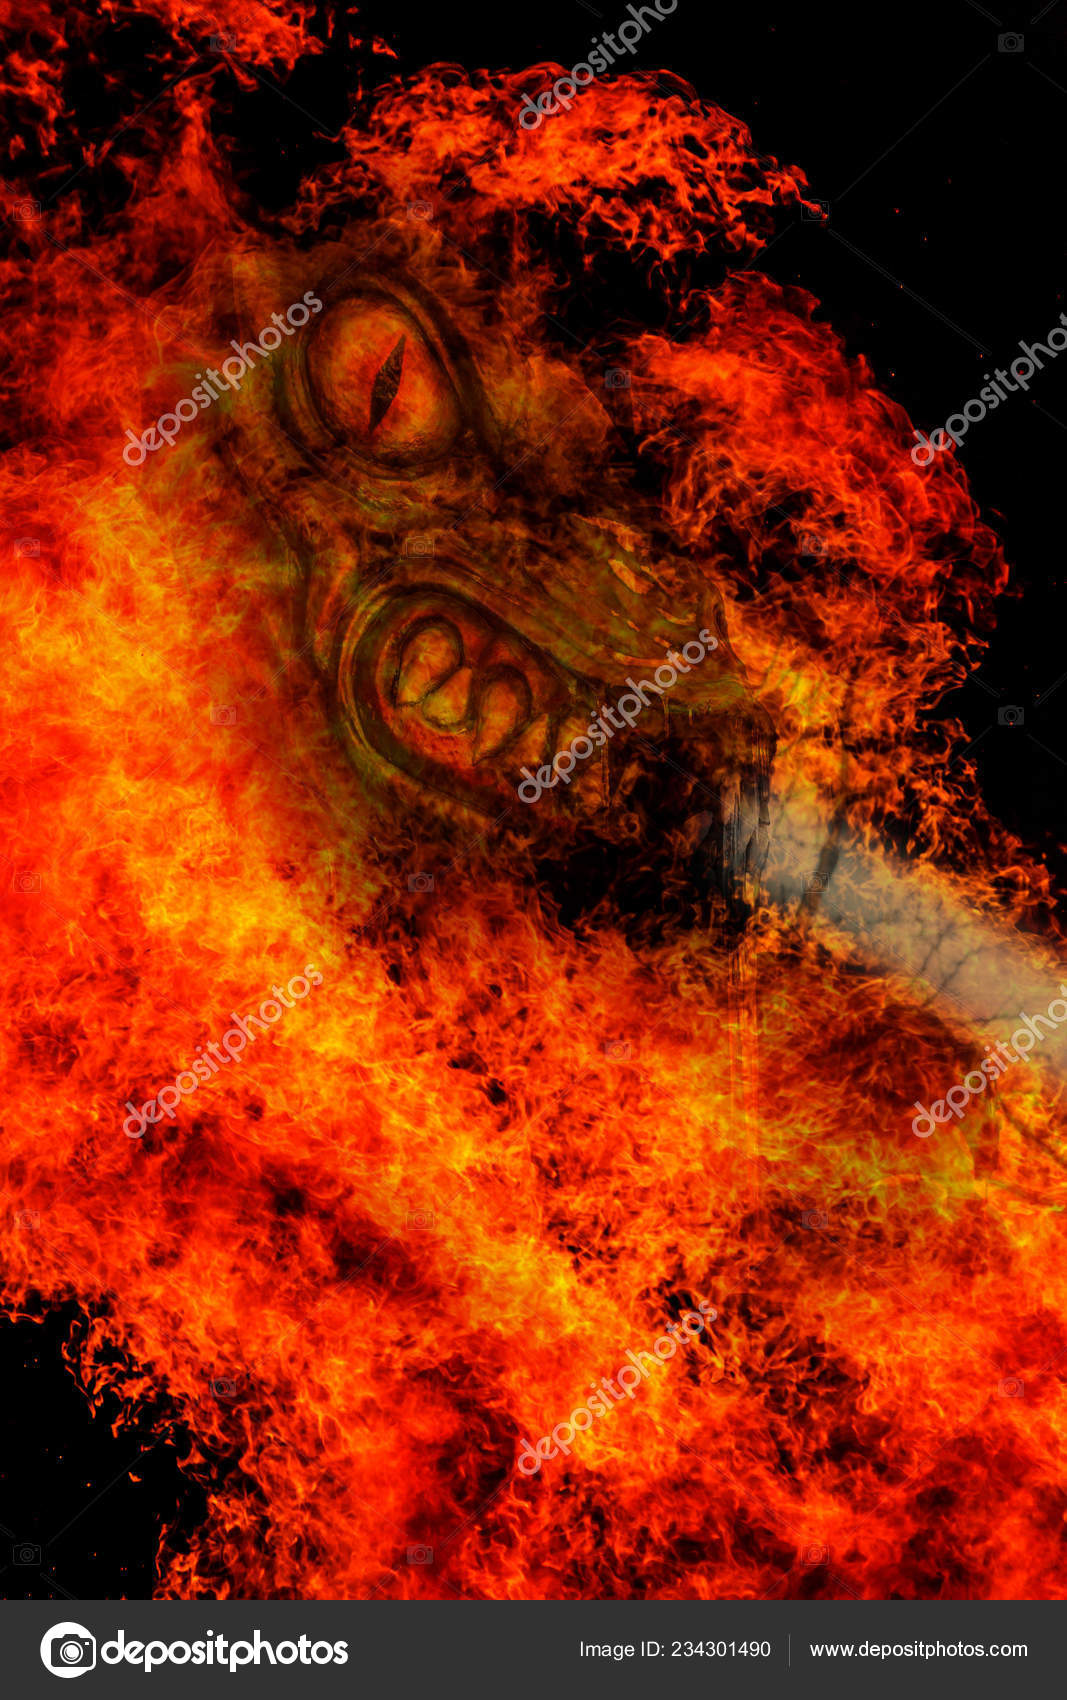 Burning Abstract Image Angel Death Termination